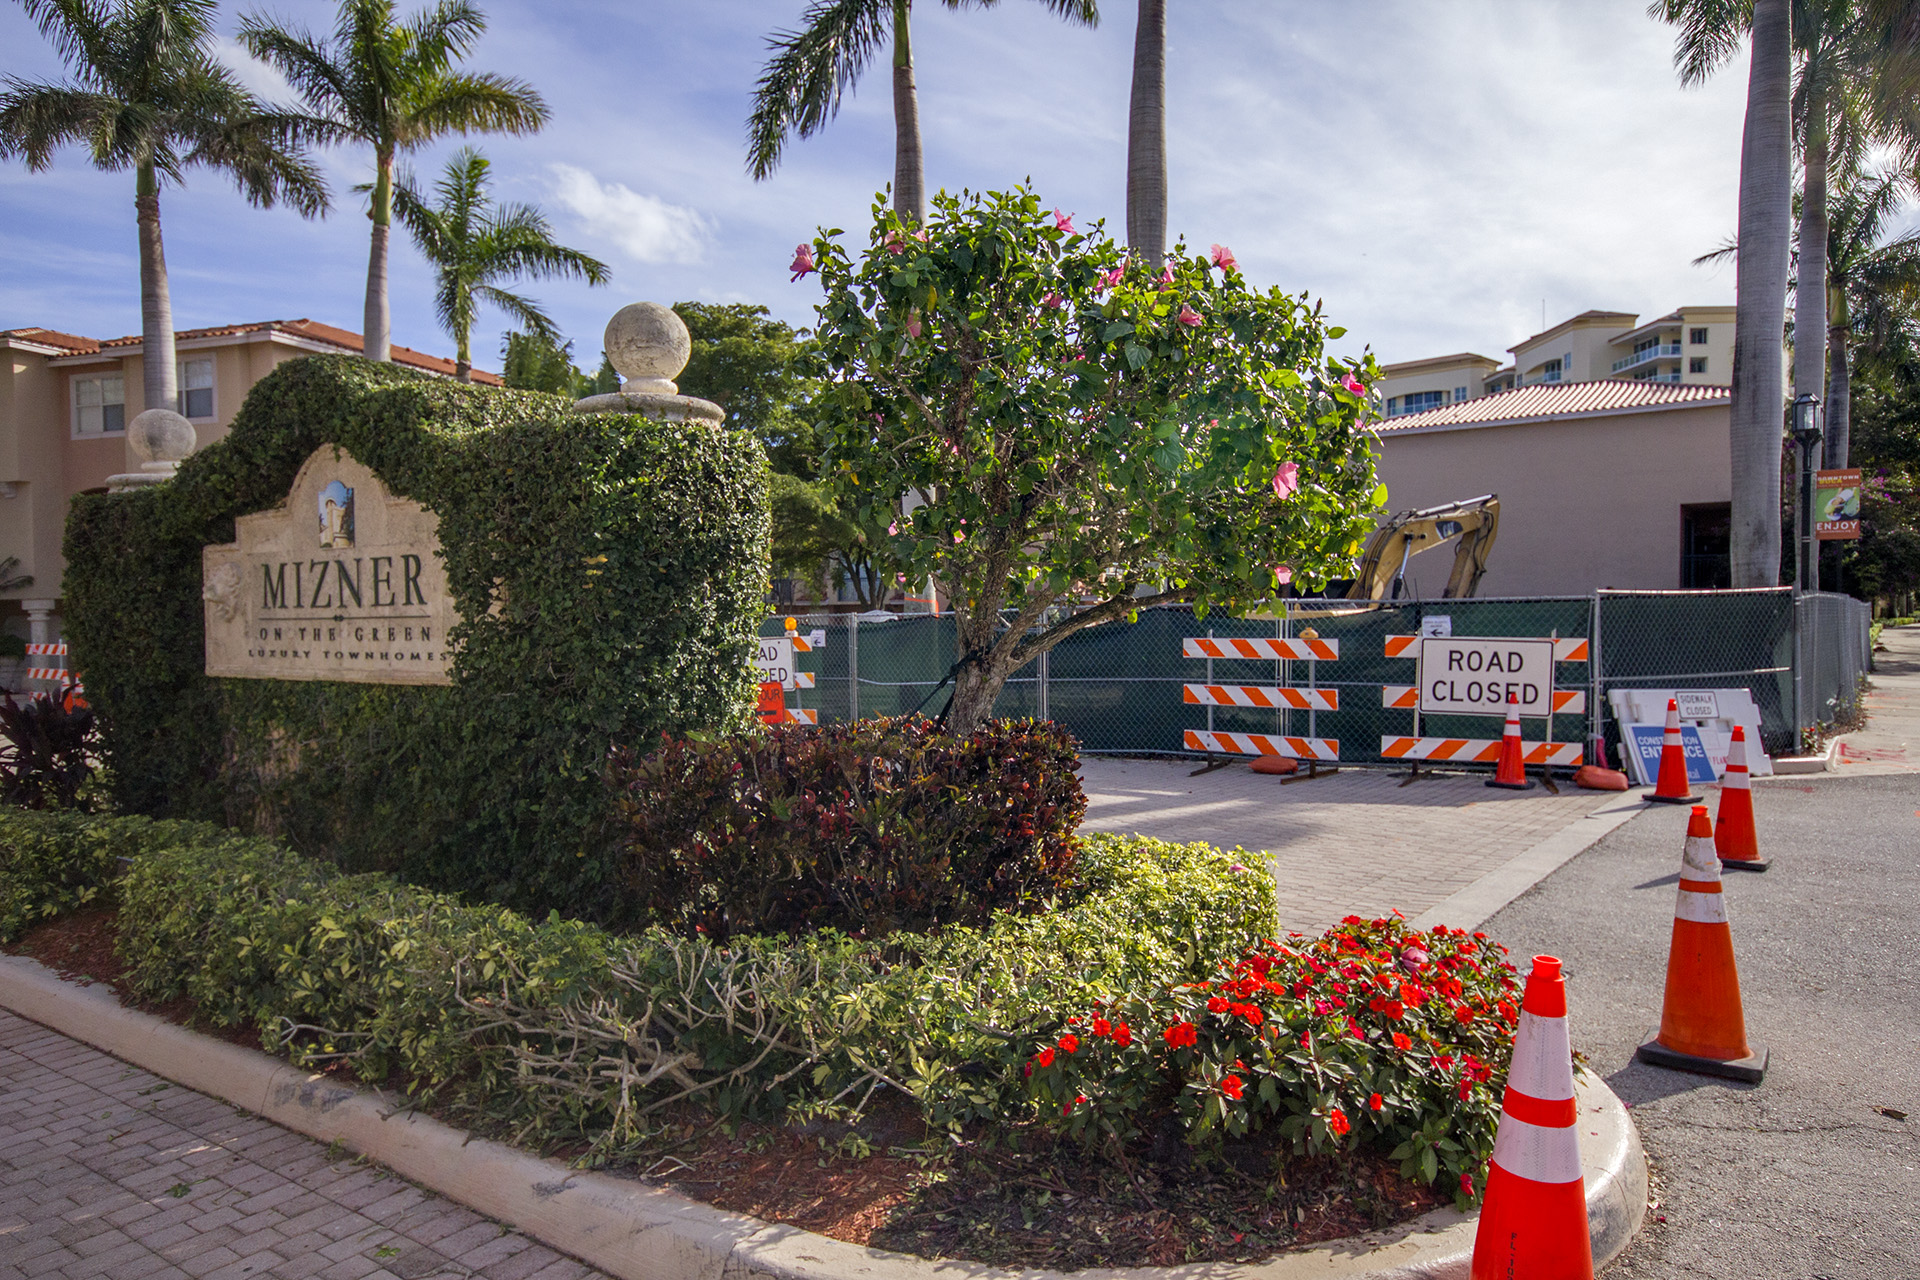 7Mizner 200 Demolition January 2018 Future Monarch Condominium Boca Raton picture3